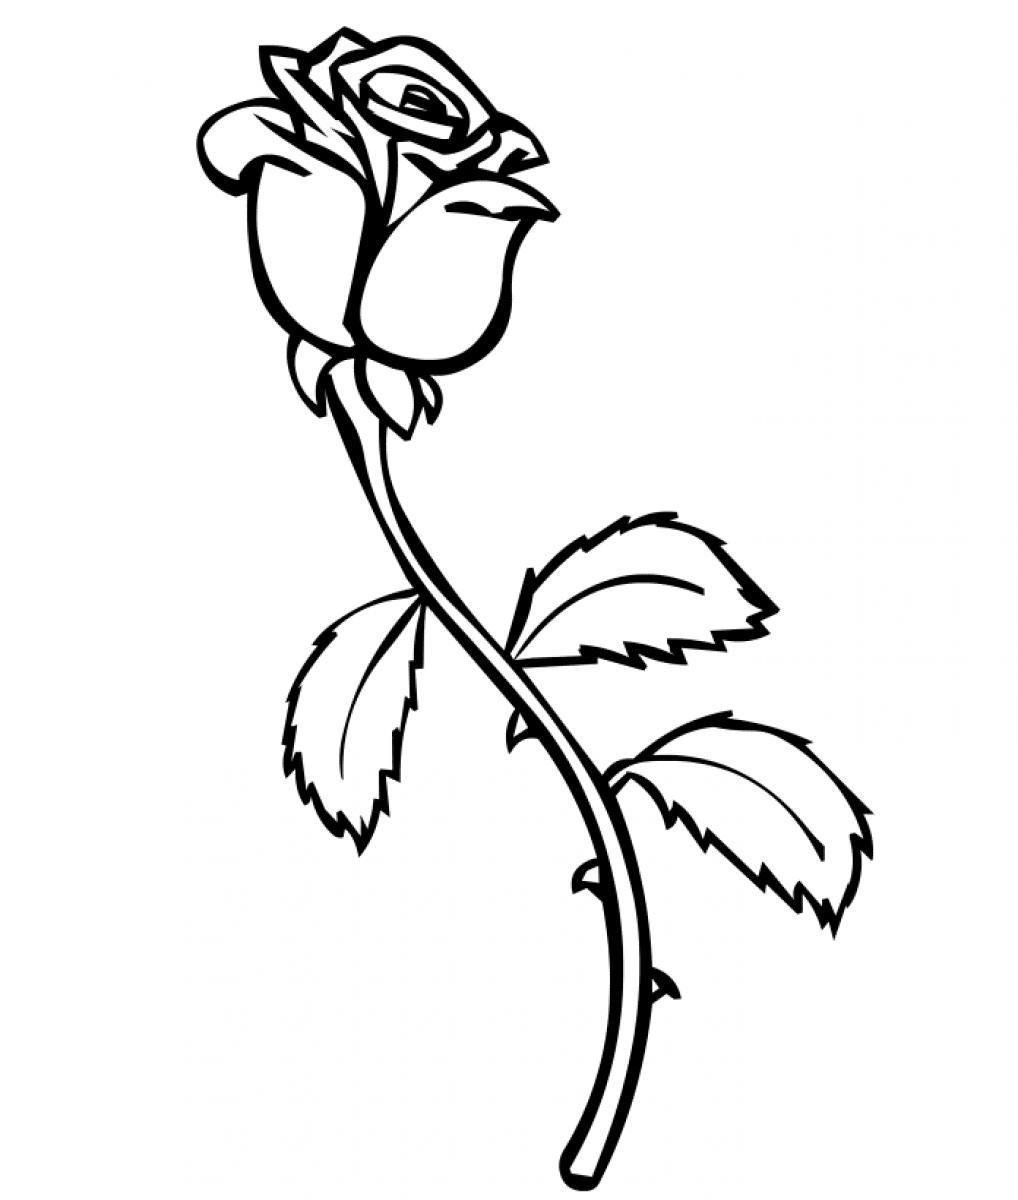 a coloring page of a rose free printable roses coloring pages for kids a a coloring page of rose